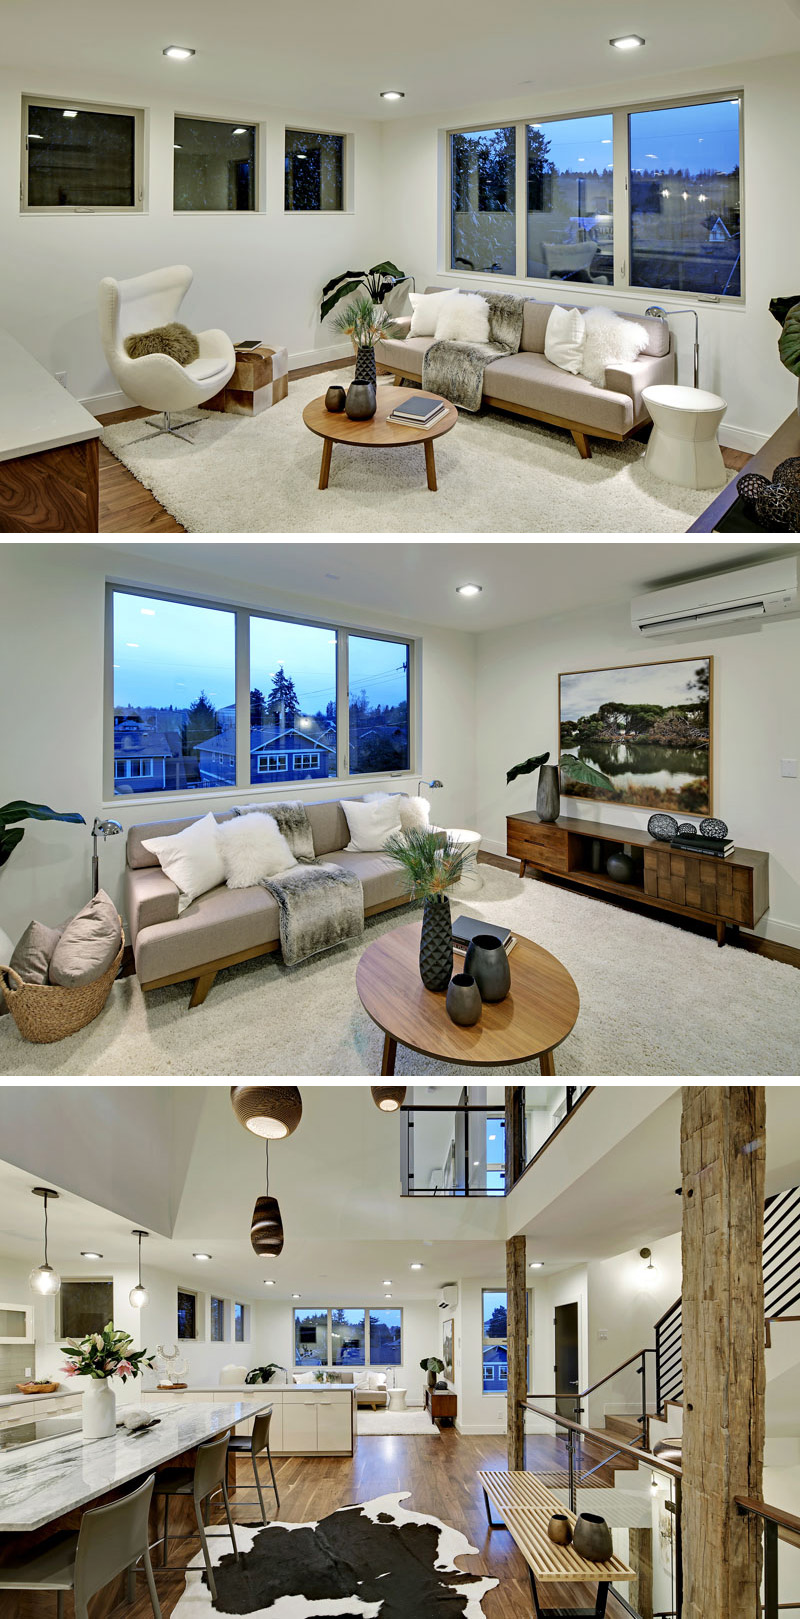 Going through the main floor of this modern home, the living room is decorated in whites and soft greys. A large white area rug has been placed on the solid walnut wood floor, which is used throughout the home.